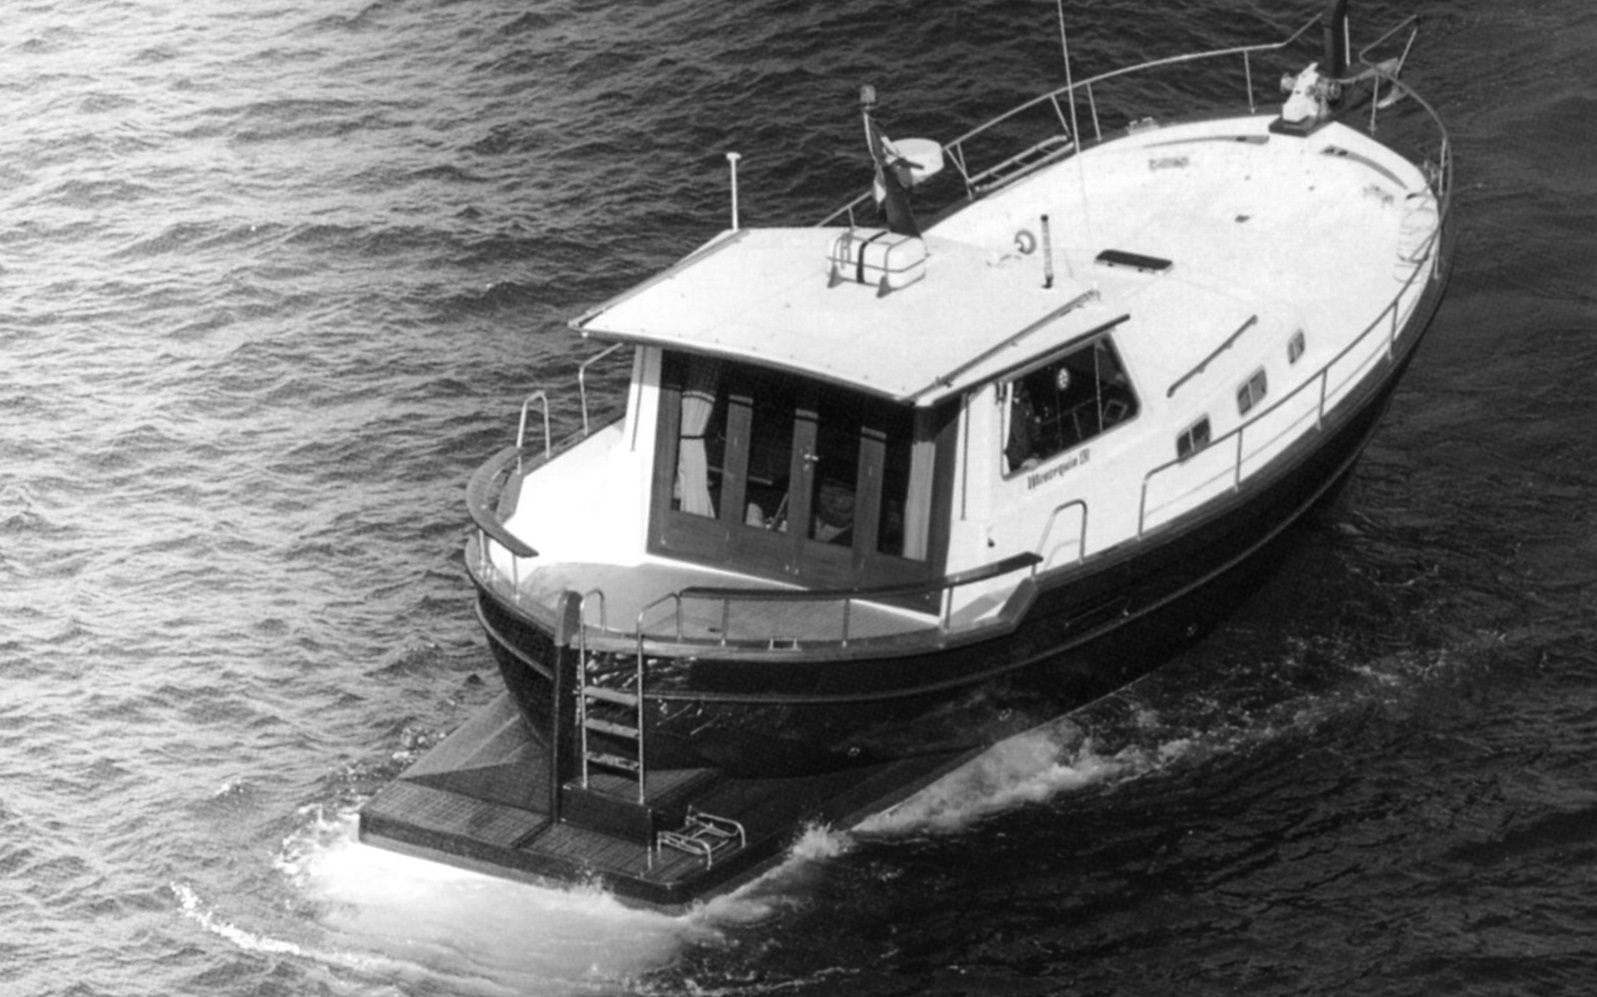 About sasga yachts and minorca yachts - history 1